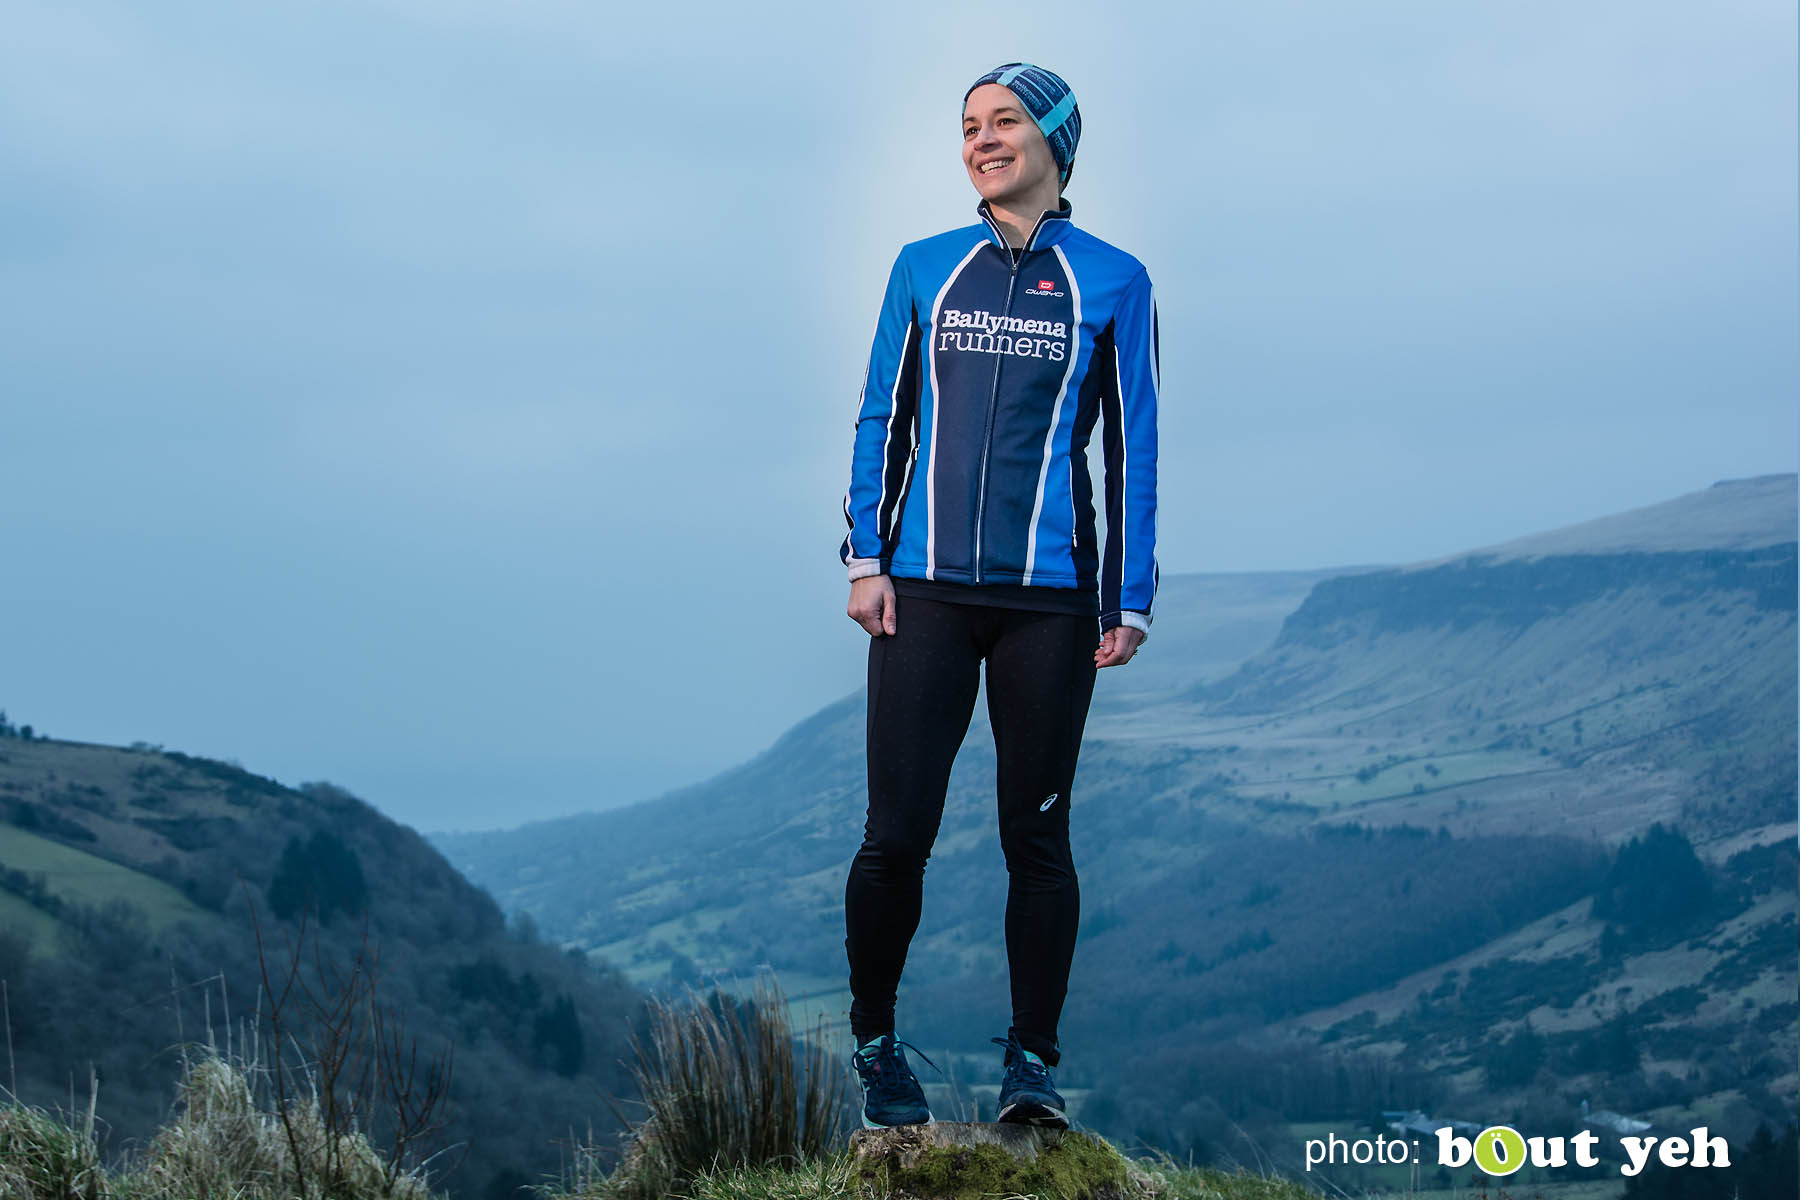 Ruth, of Ballymena Runners, at Glenariff Forest, Northern Ireland. Photo 0597.